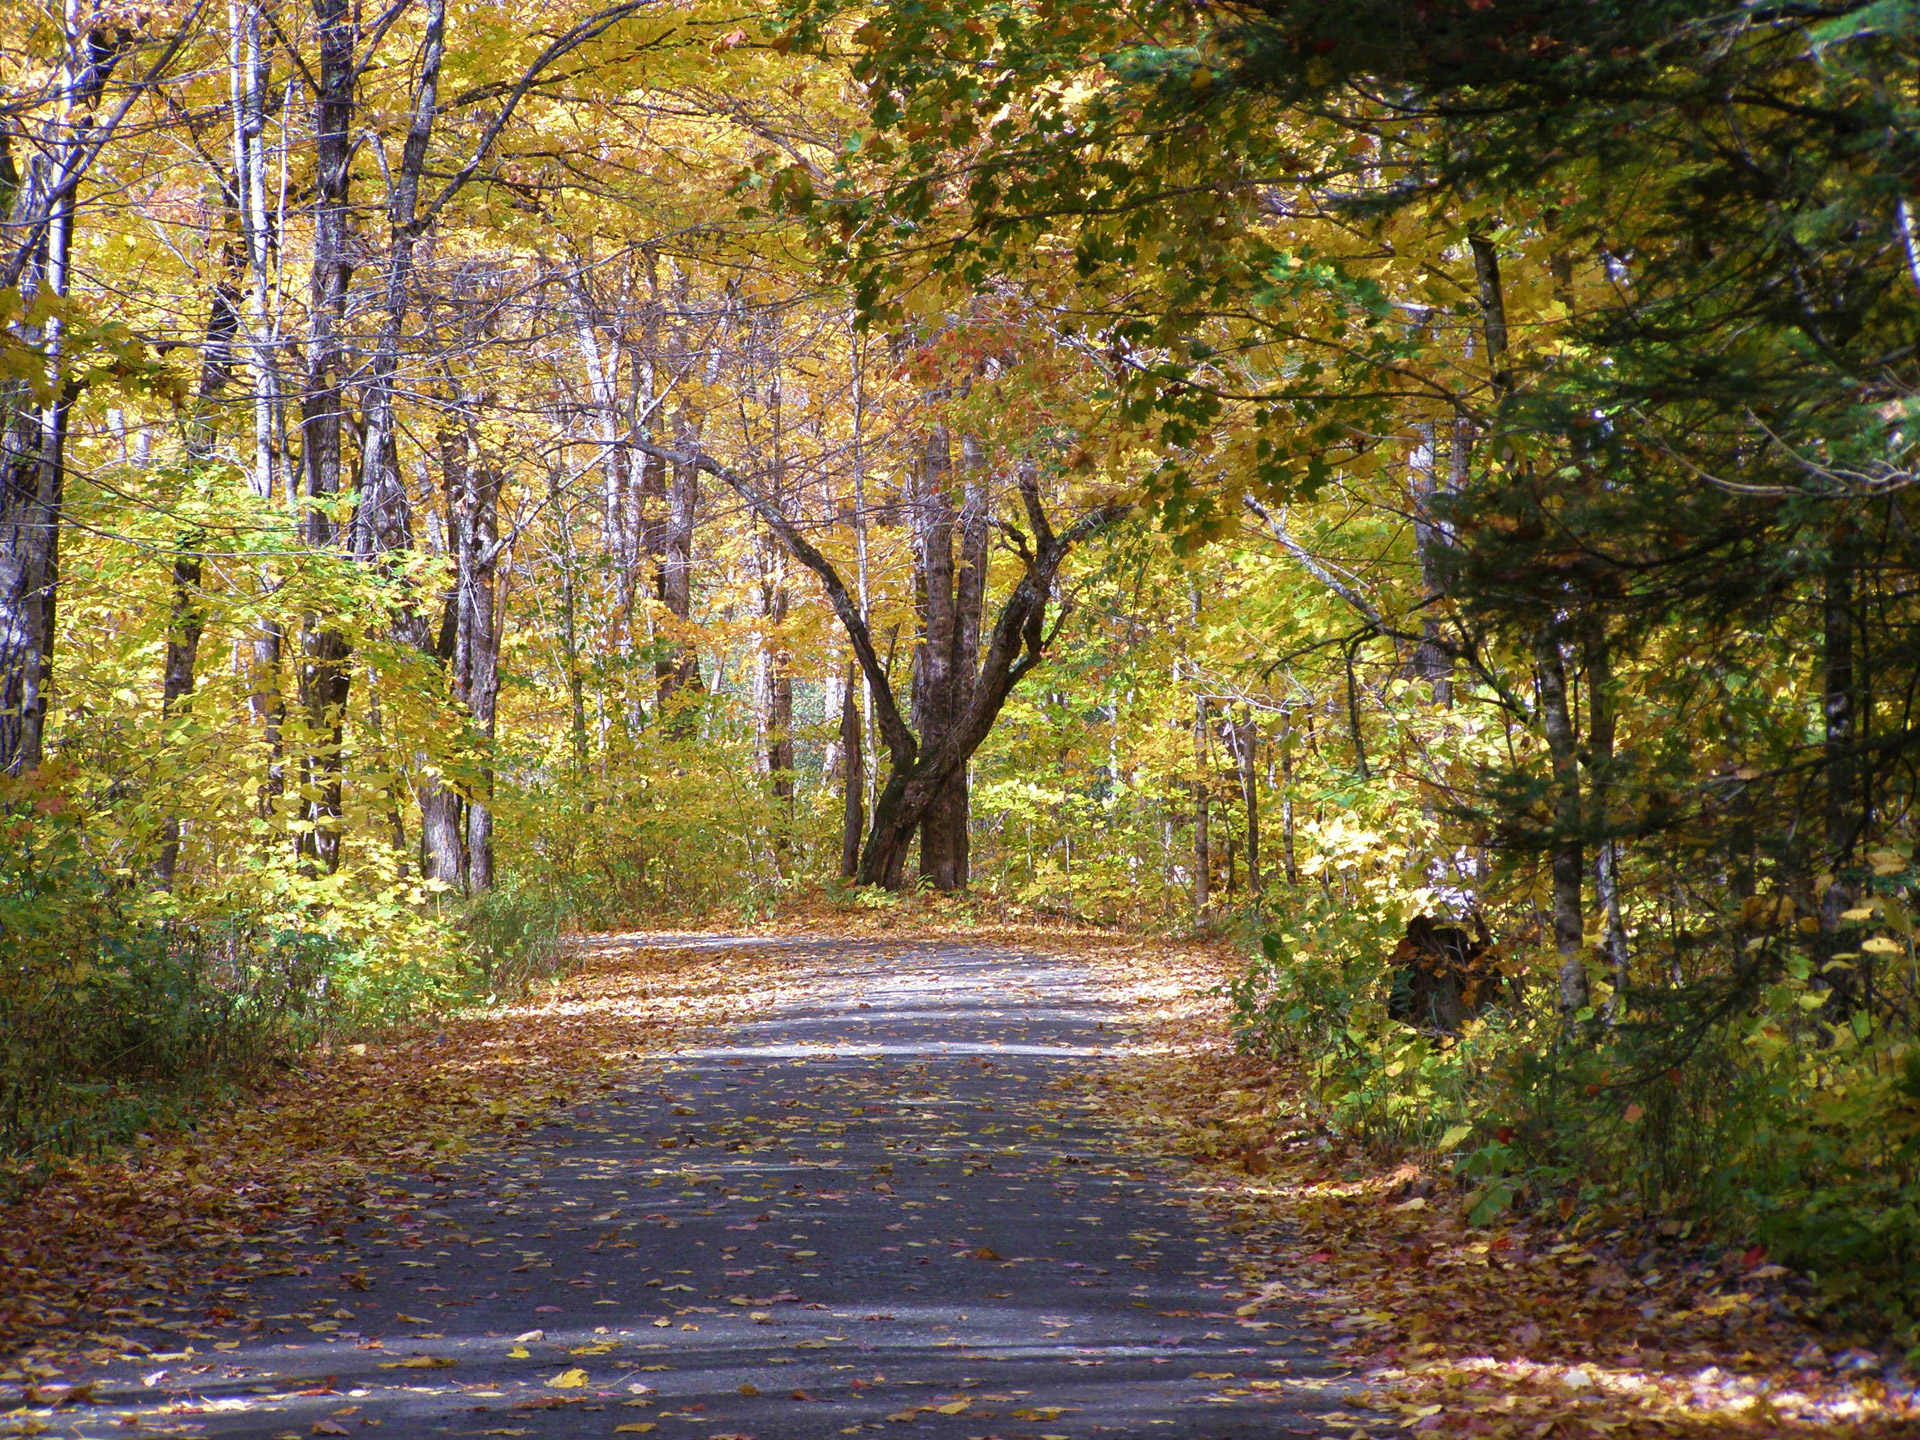 Scenery Wallpaper Fall Beautiful Country Road In Fall Free Stock Photo Public